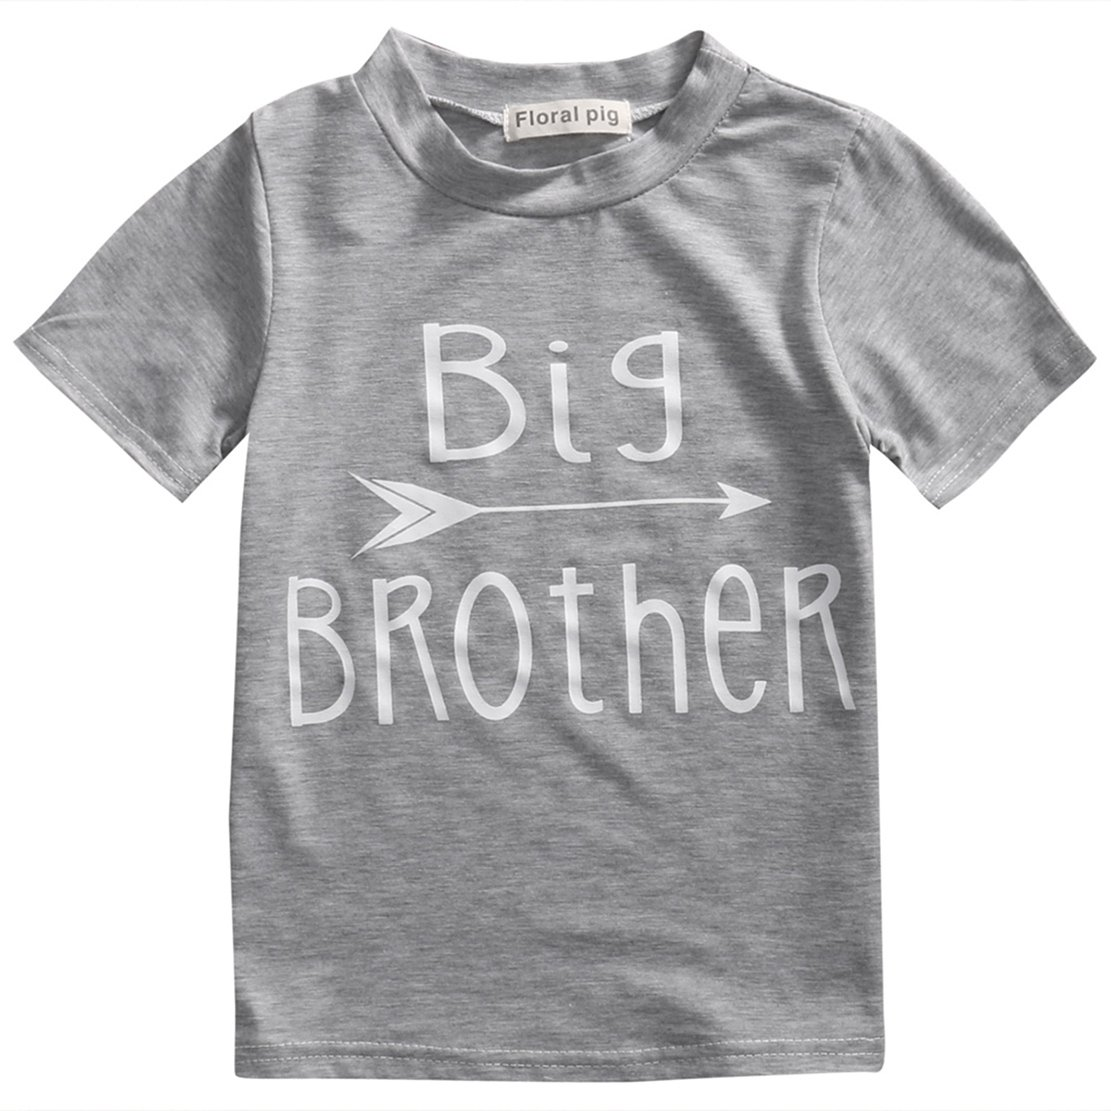 Baby Sibling Shirts Big Sister Big Brother T-Shirts Blouses One Piece